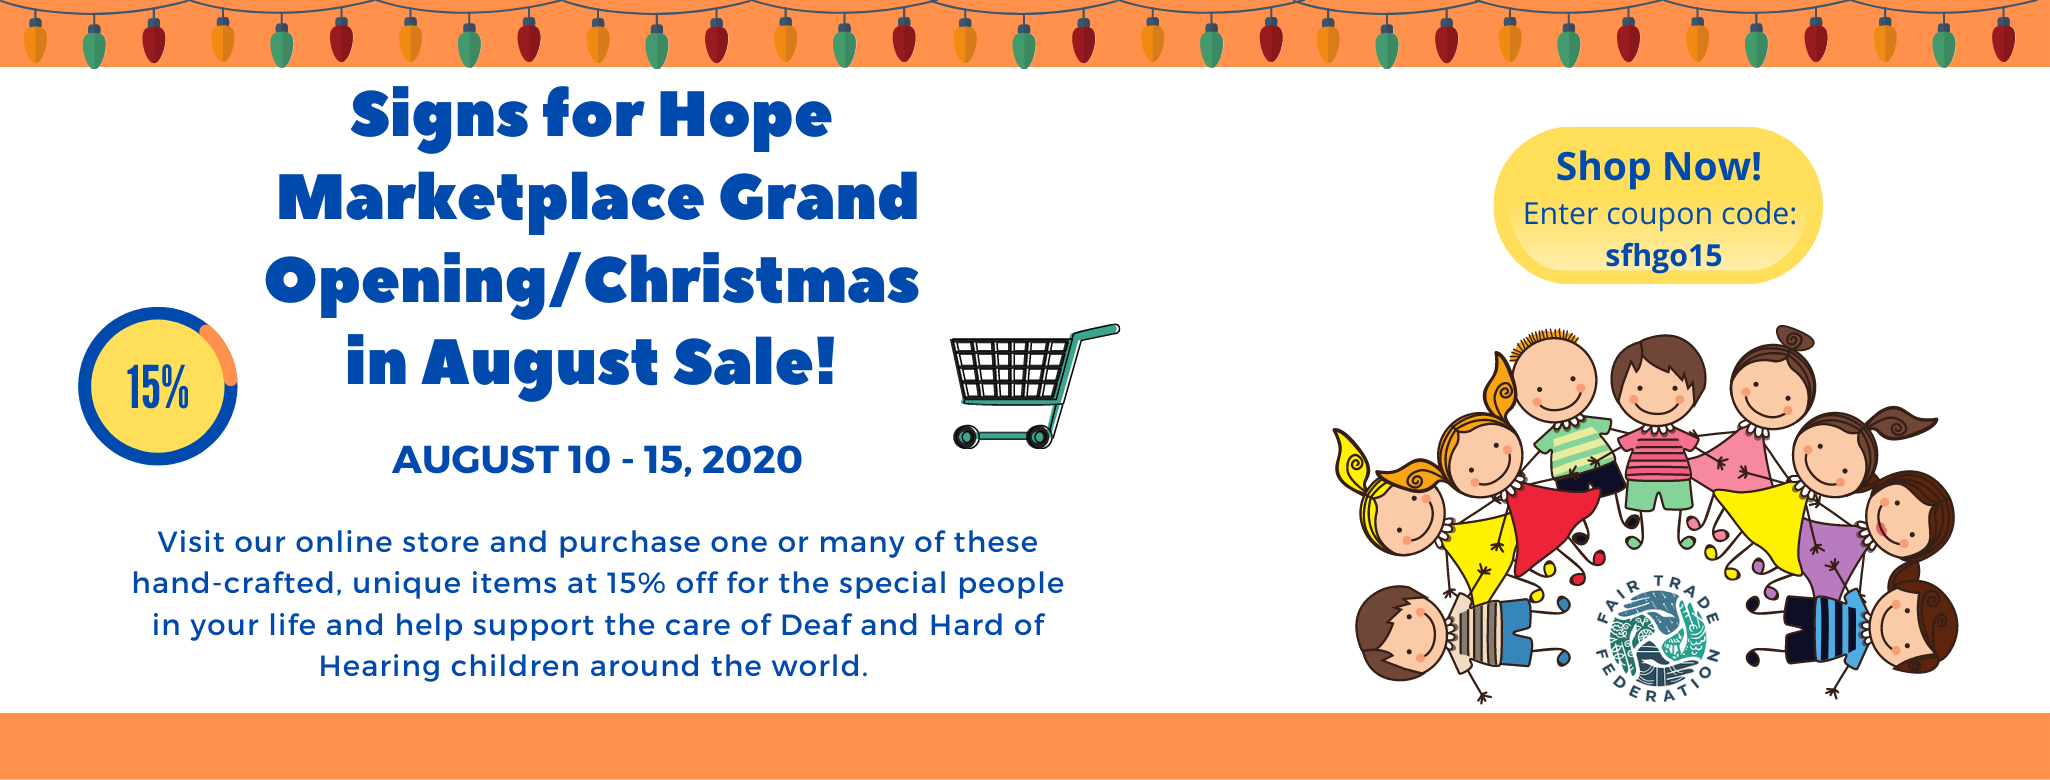 Signs for Hope Marketplace Grand Opening. August 10-15, 2020.